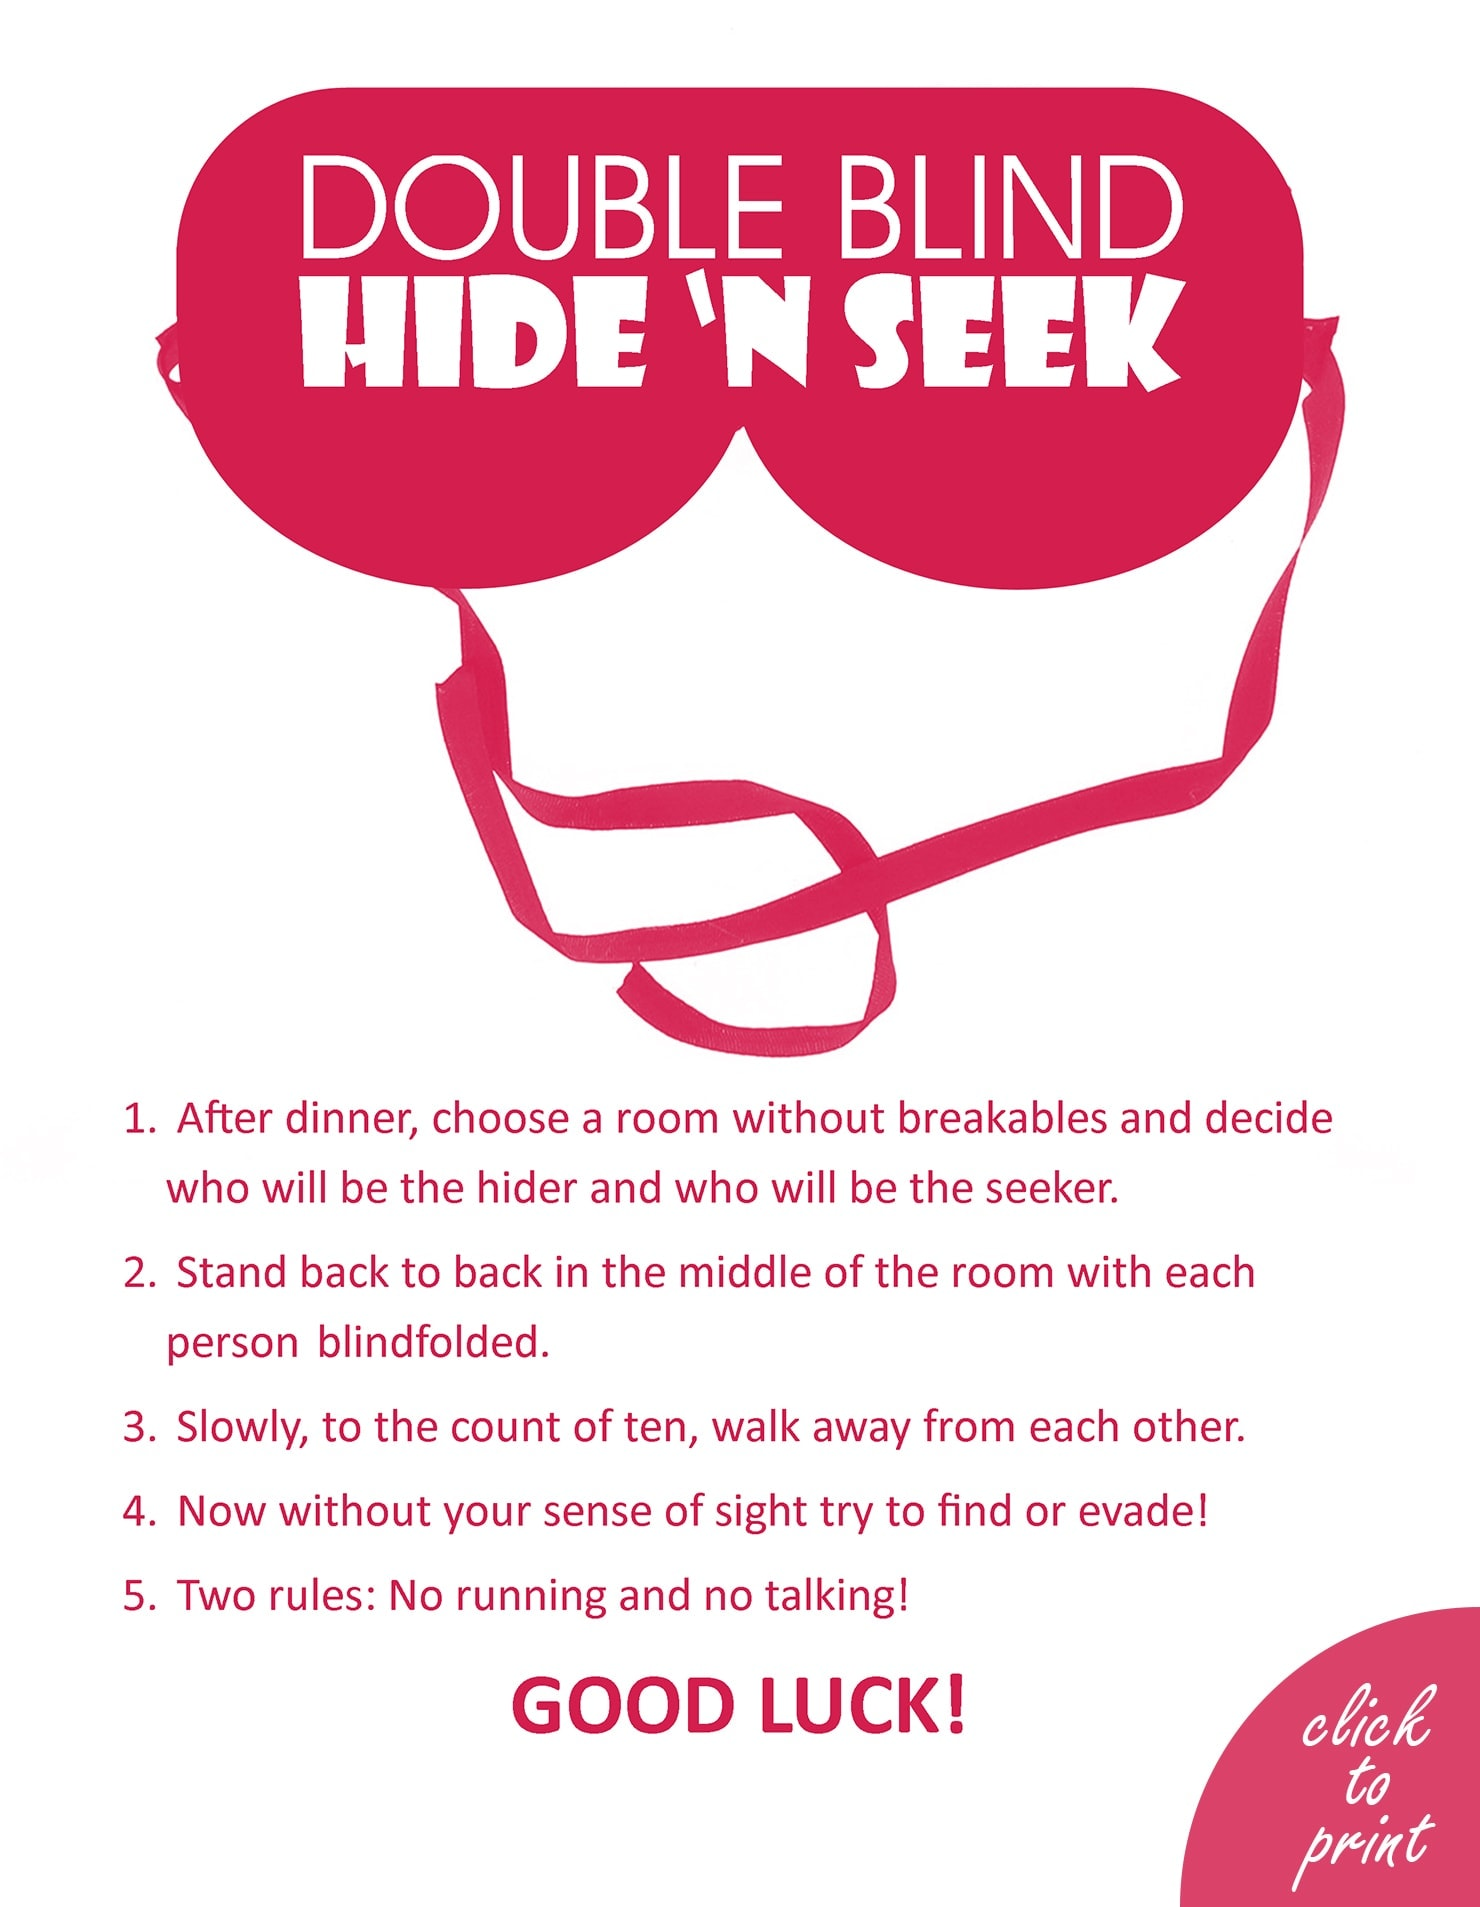 Double Blind Hide 'n Seek Instructions